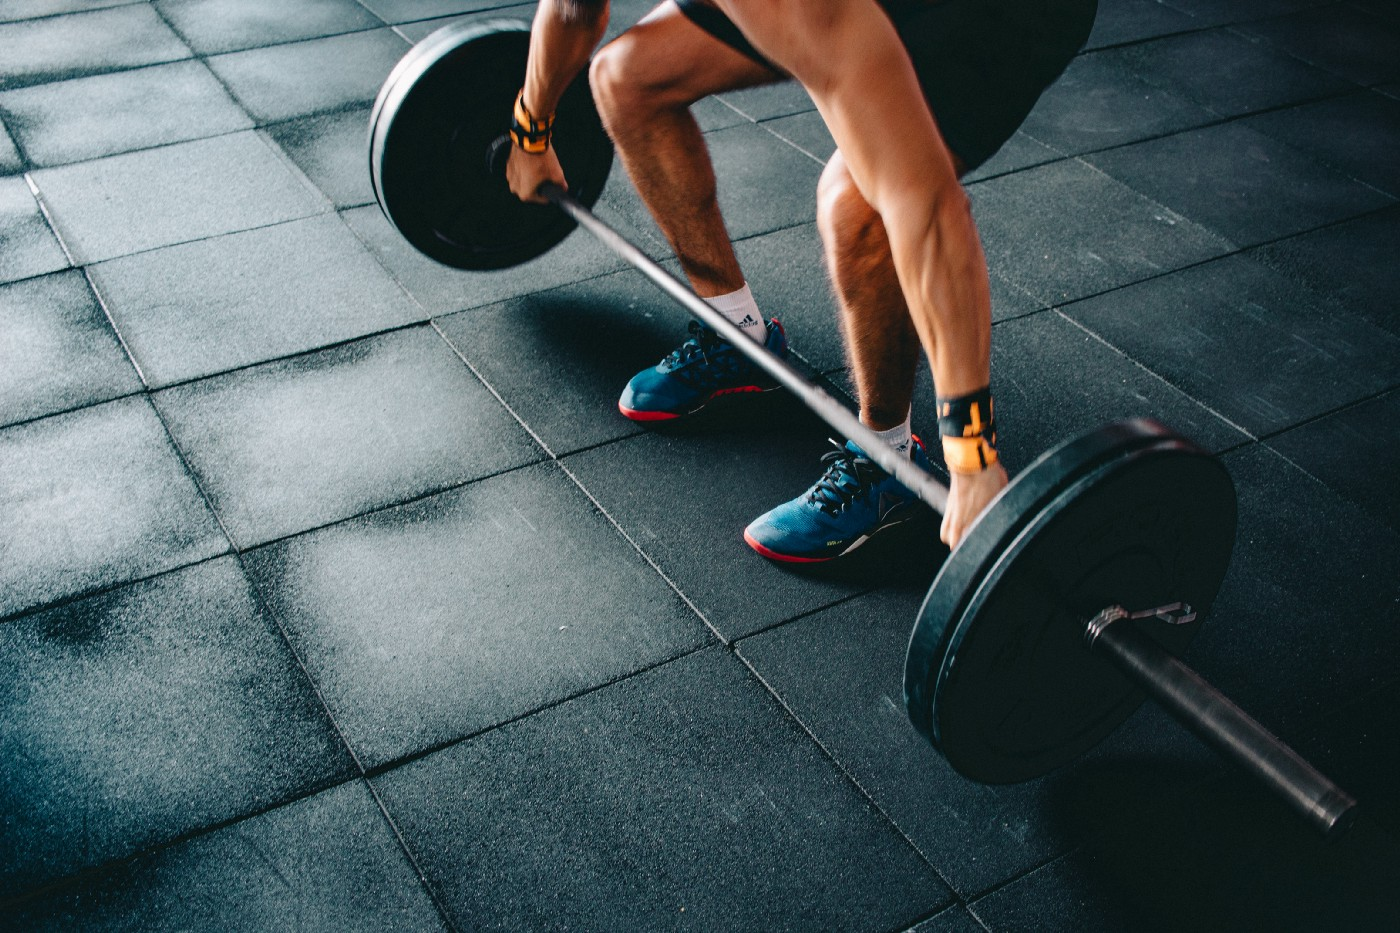 Athlete with wide grip on barbell lifting weights.